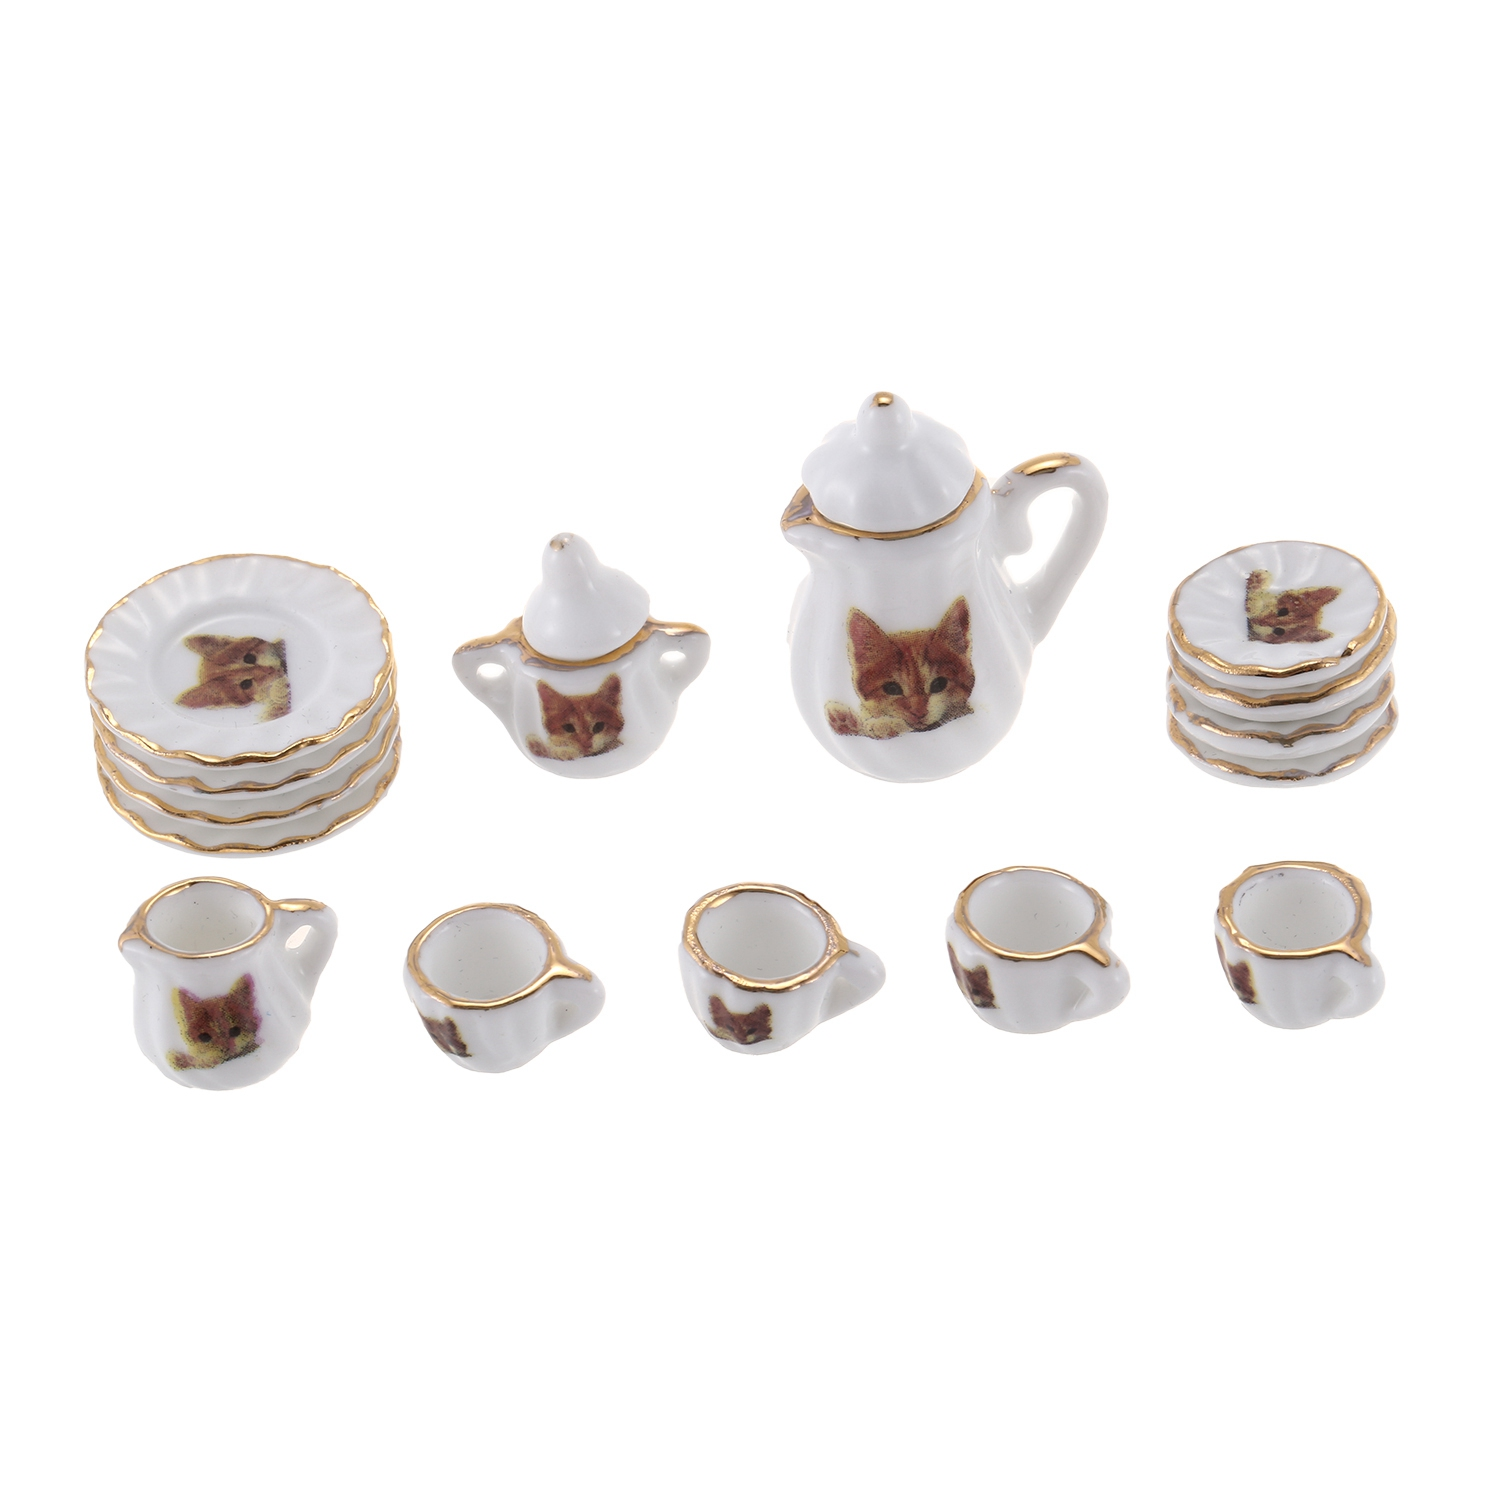 10 Mini White Coffee Cup Glue on Saucer Dollhouse Miniatures Supply Jewelry Deco